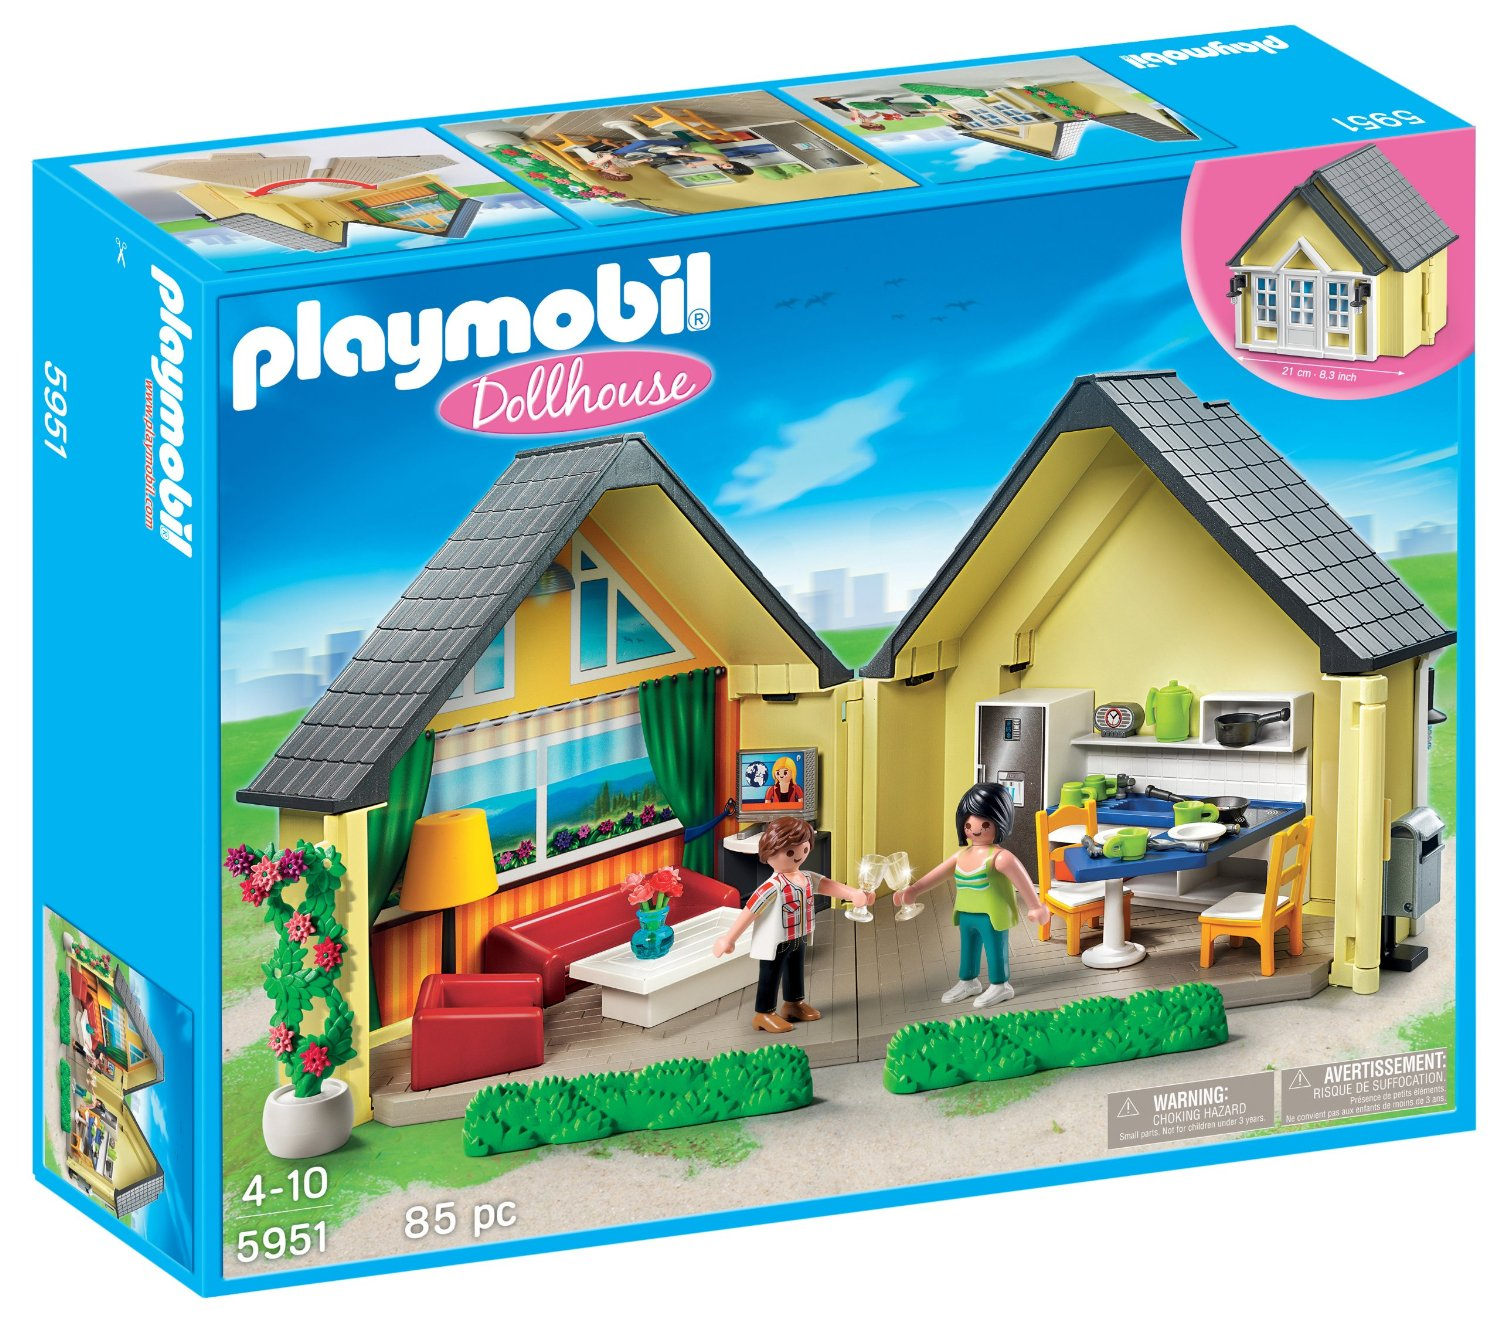 Brickstoy new playmobil item lanuched playmobil dollhouse 5951 for Maison moderne playmobil